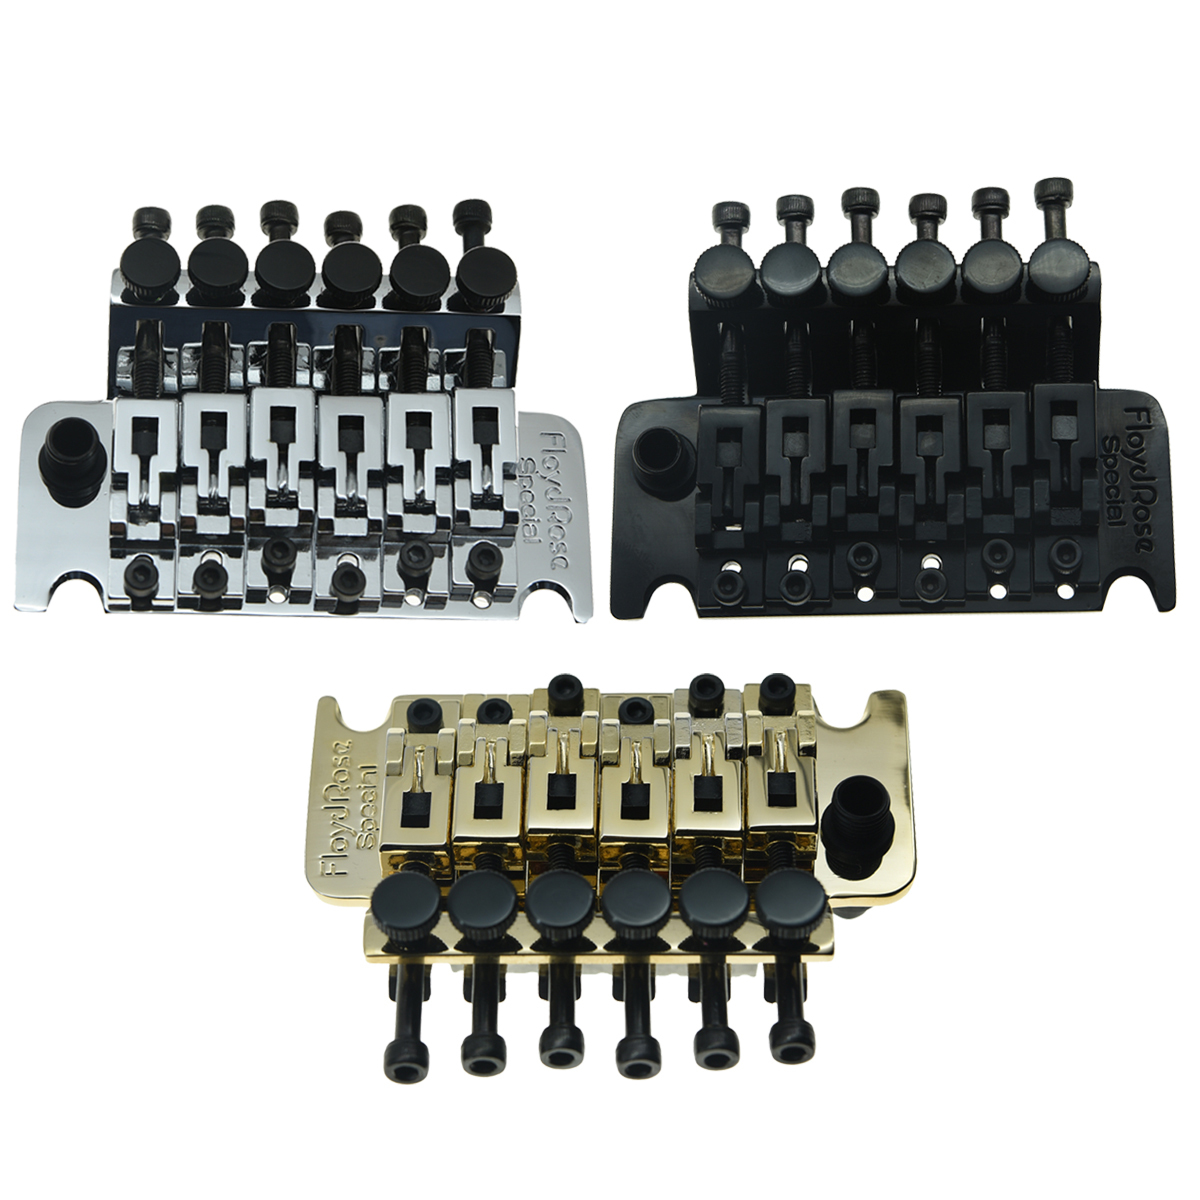 KAISH Genuine Floyd Rose Special Guitar Locking Tremolo Bridge System with R2 or R3 Nut Chrome/Black/Gold new floyd rose special frs5000 tremolo black tremolo